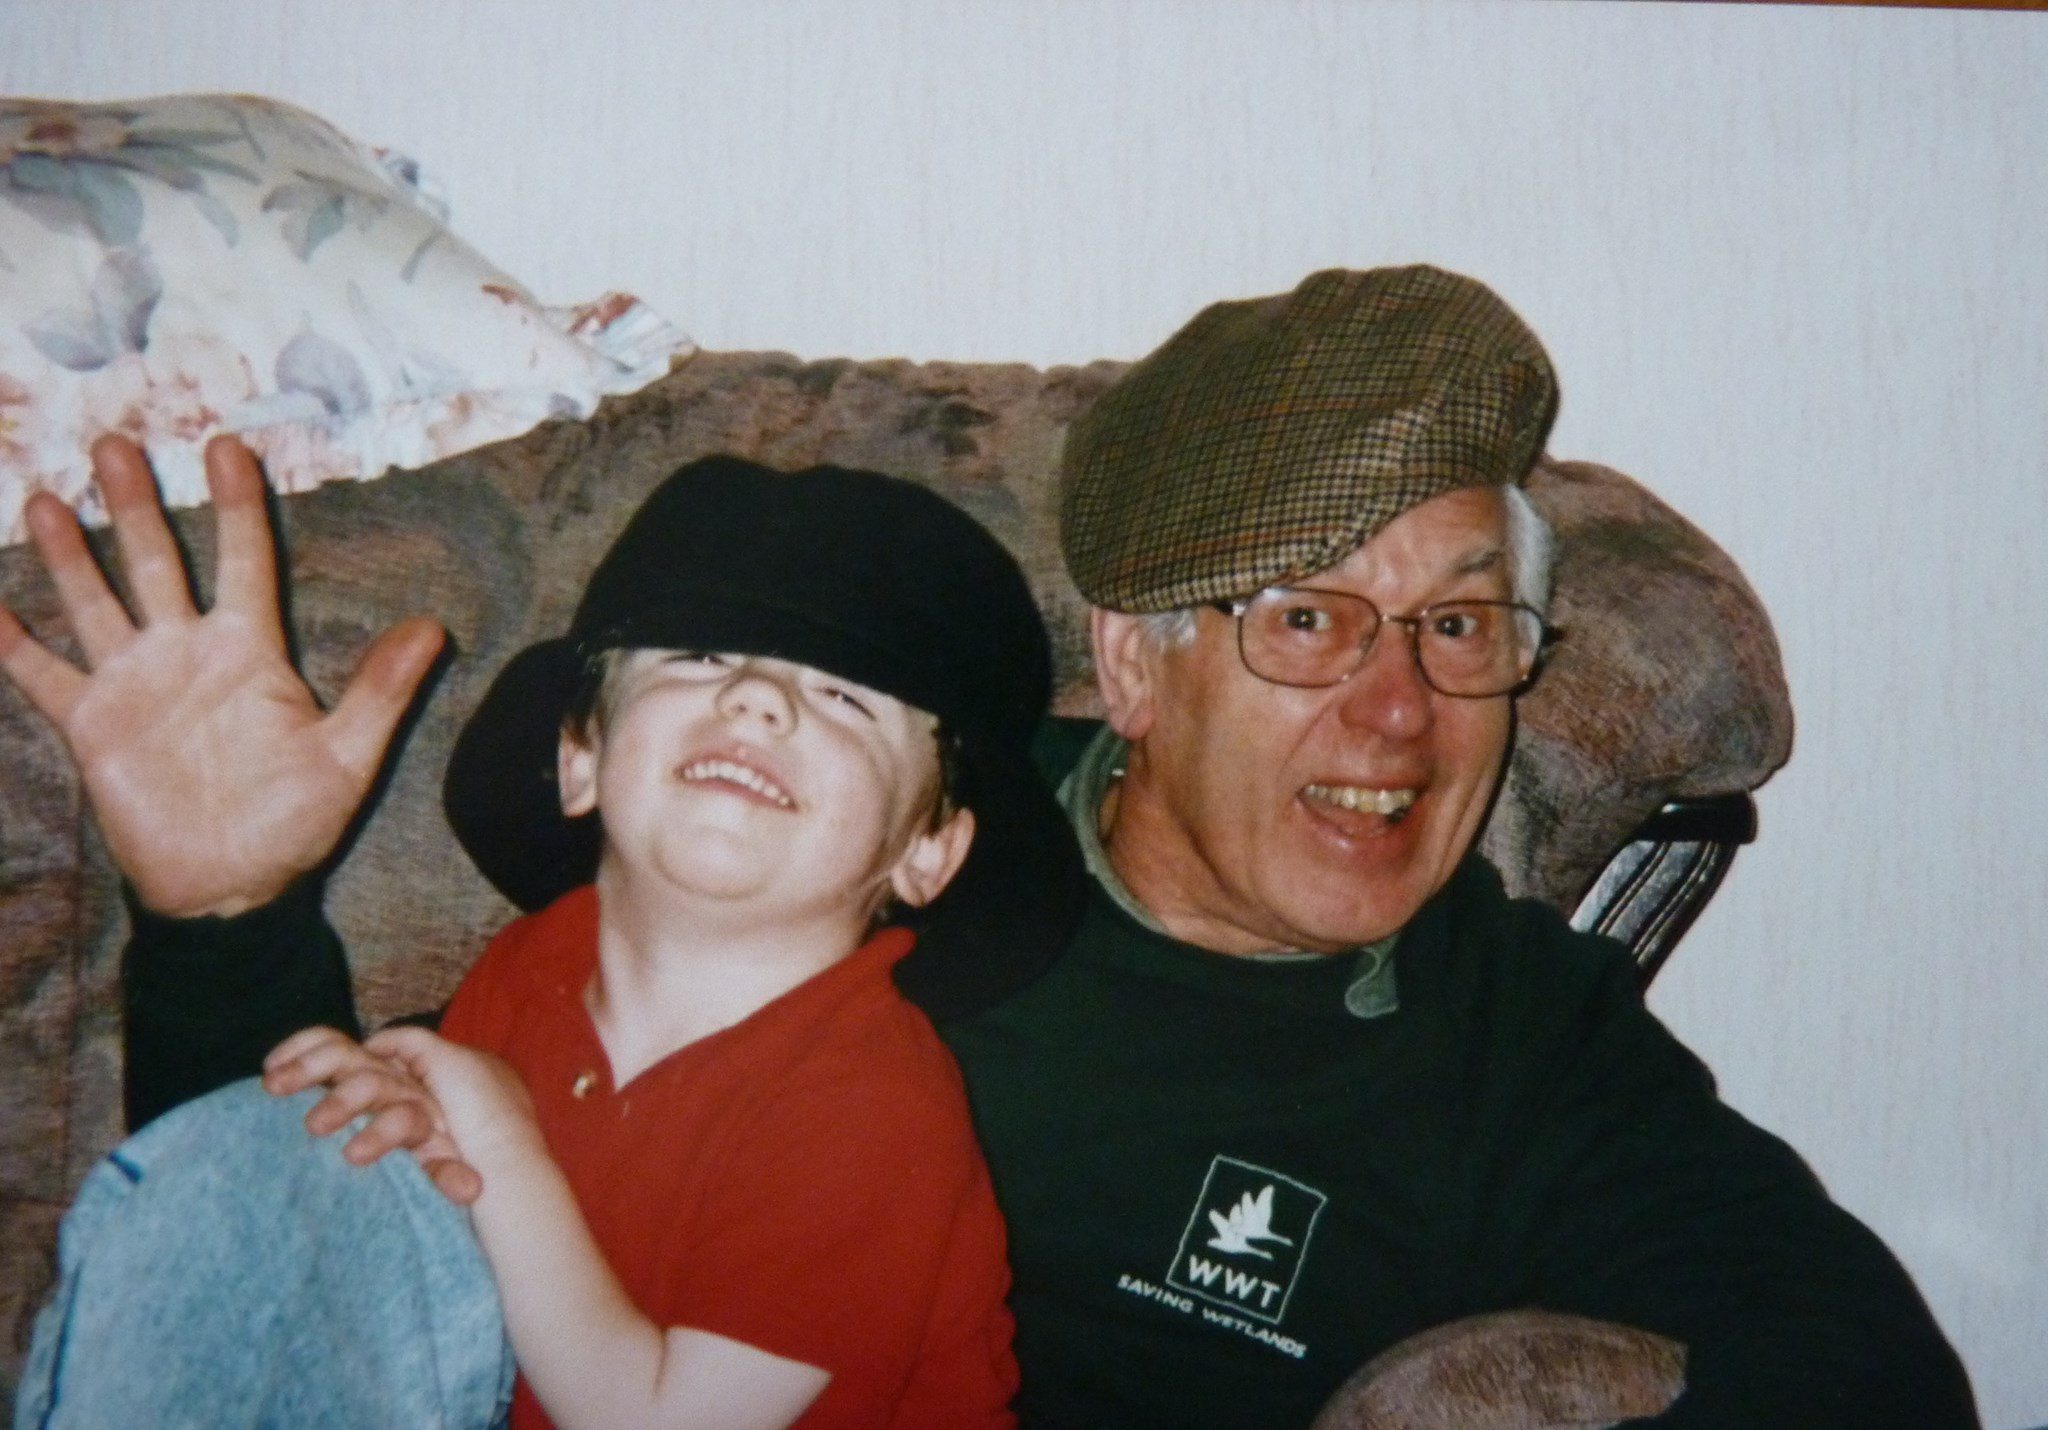 Thomas (then about 5) and grandad having fun!